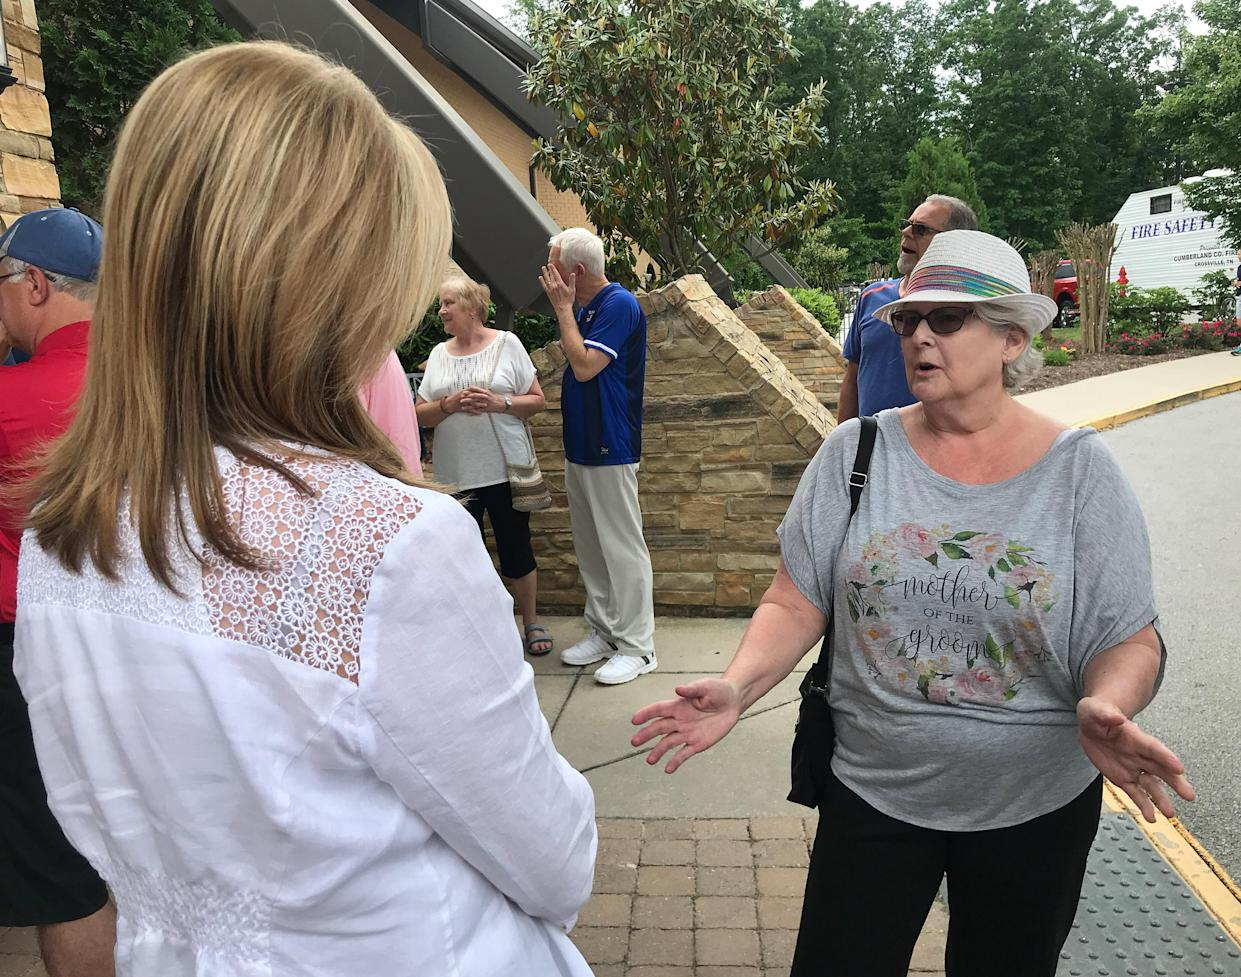 Marcia Storrison, right, challenges Blackburn's support for Donald Trump. (Photo: Holly Bailey/Yahoo News)